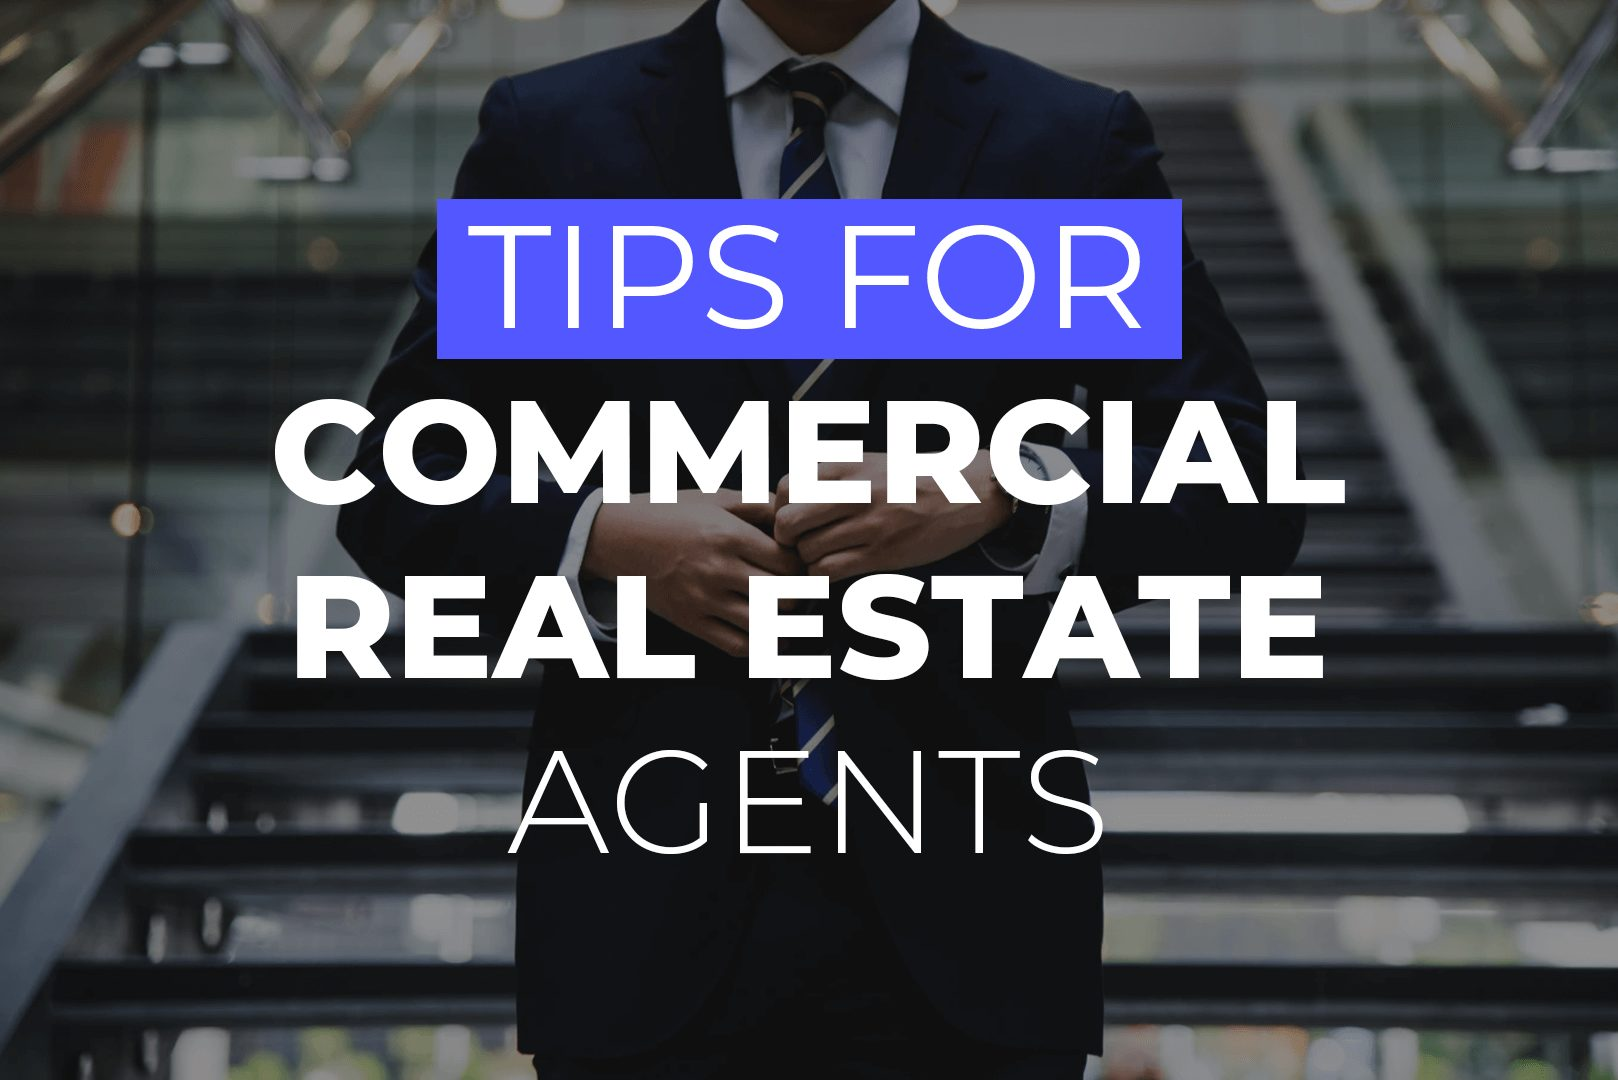 Tips For Commercial Real Estate Agents